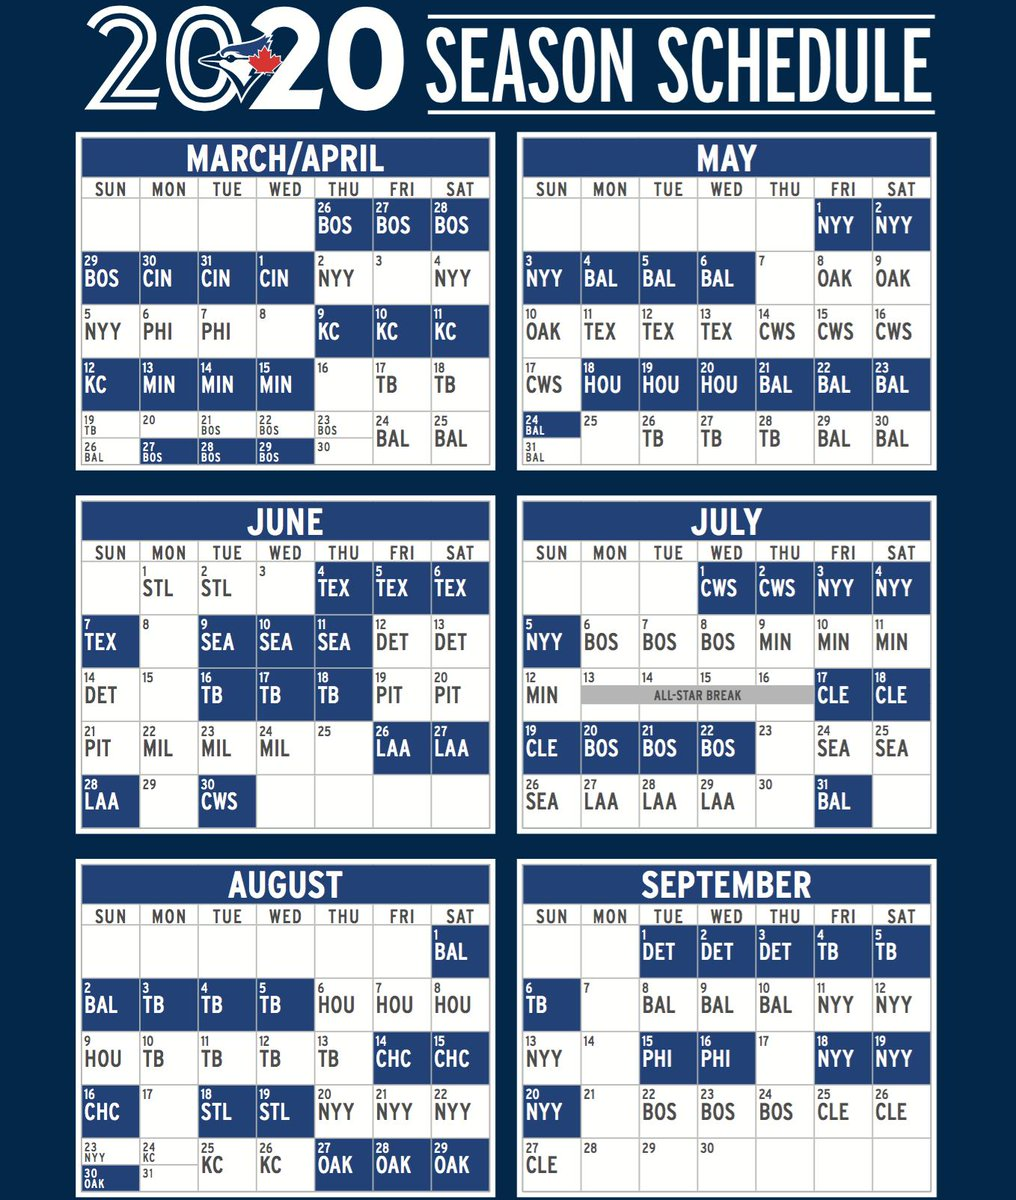 Cubs Schedule 2020 Printable.Ben Nicholson Smith On Twitter Your 2020 Bluejays